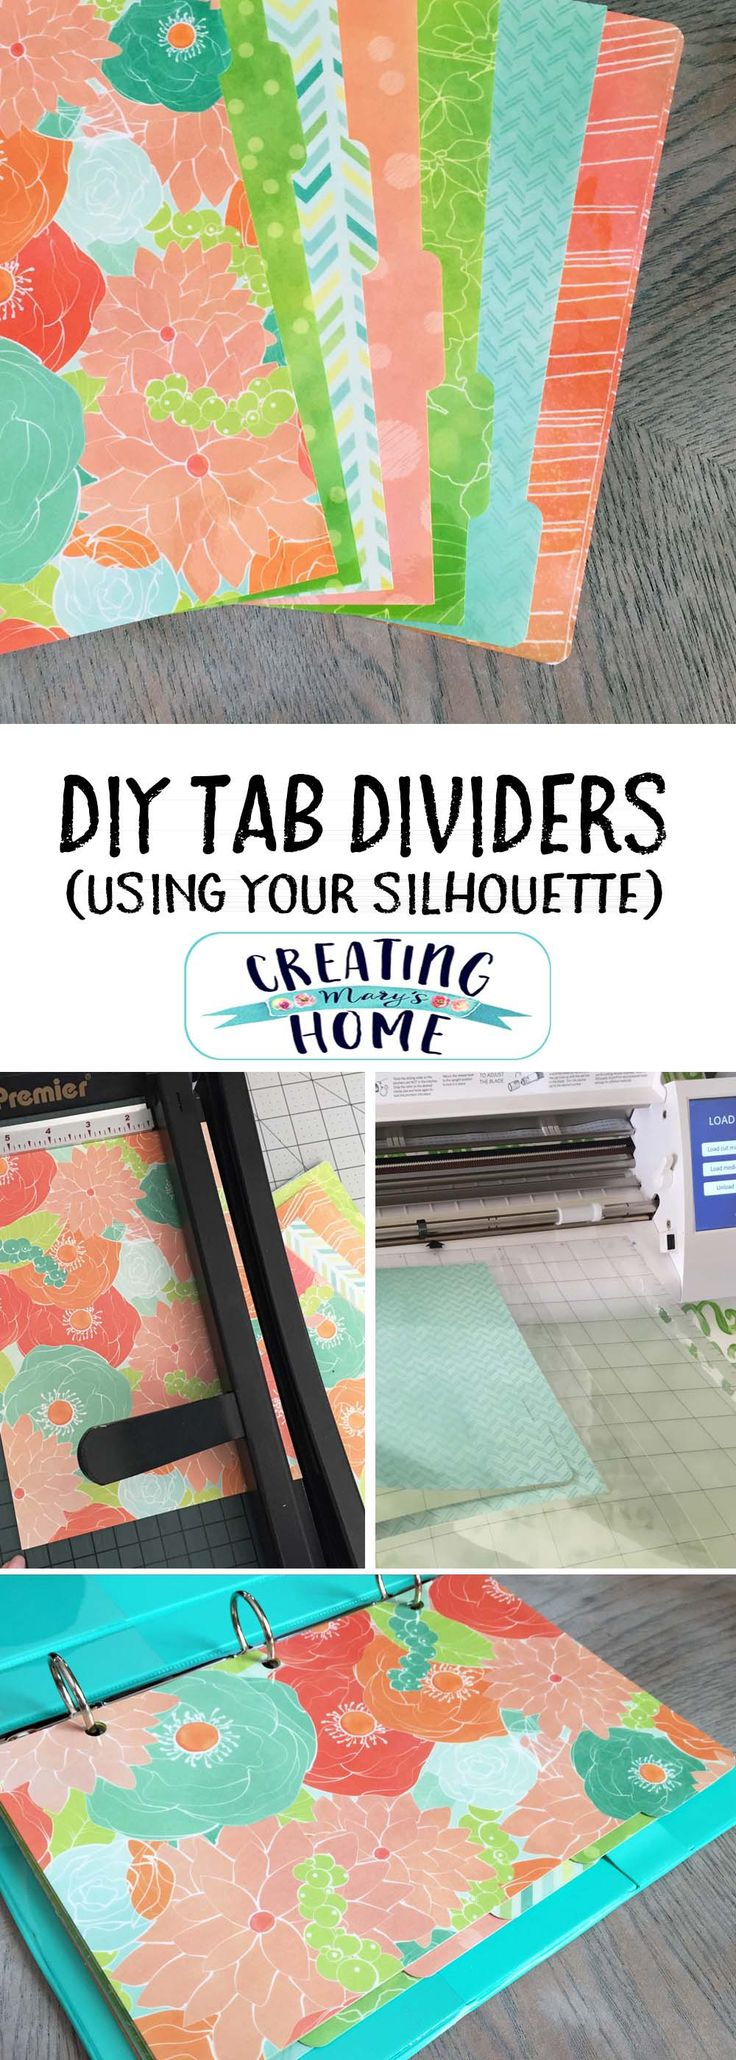 DIY Tab Dividers Tutorial - creatingmaryshome.com